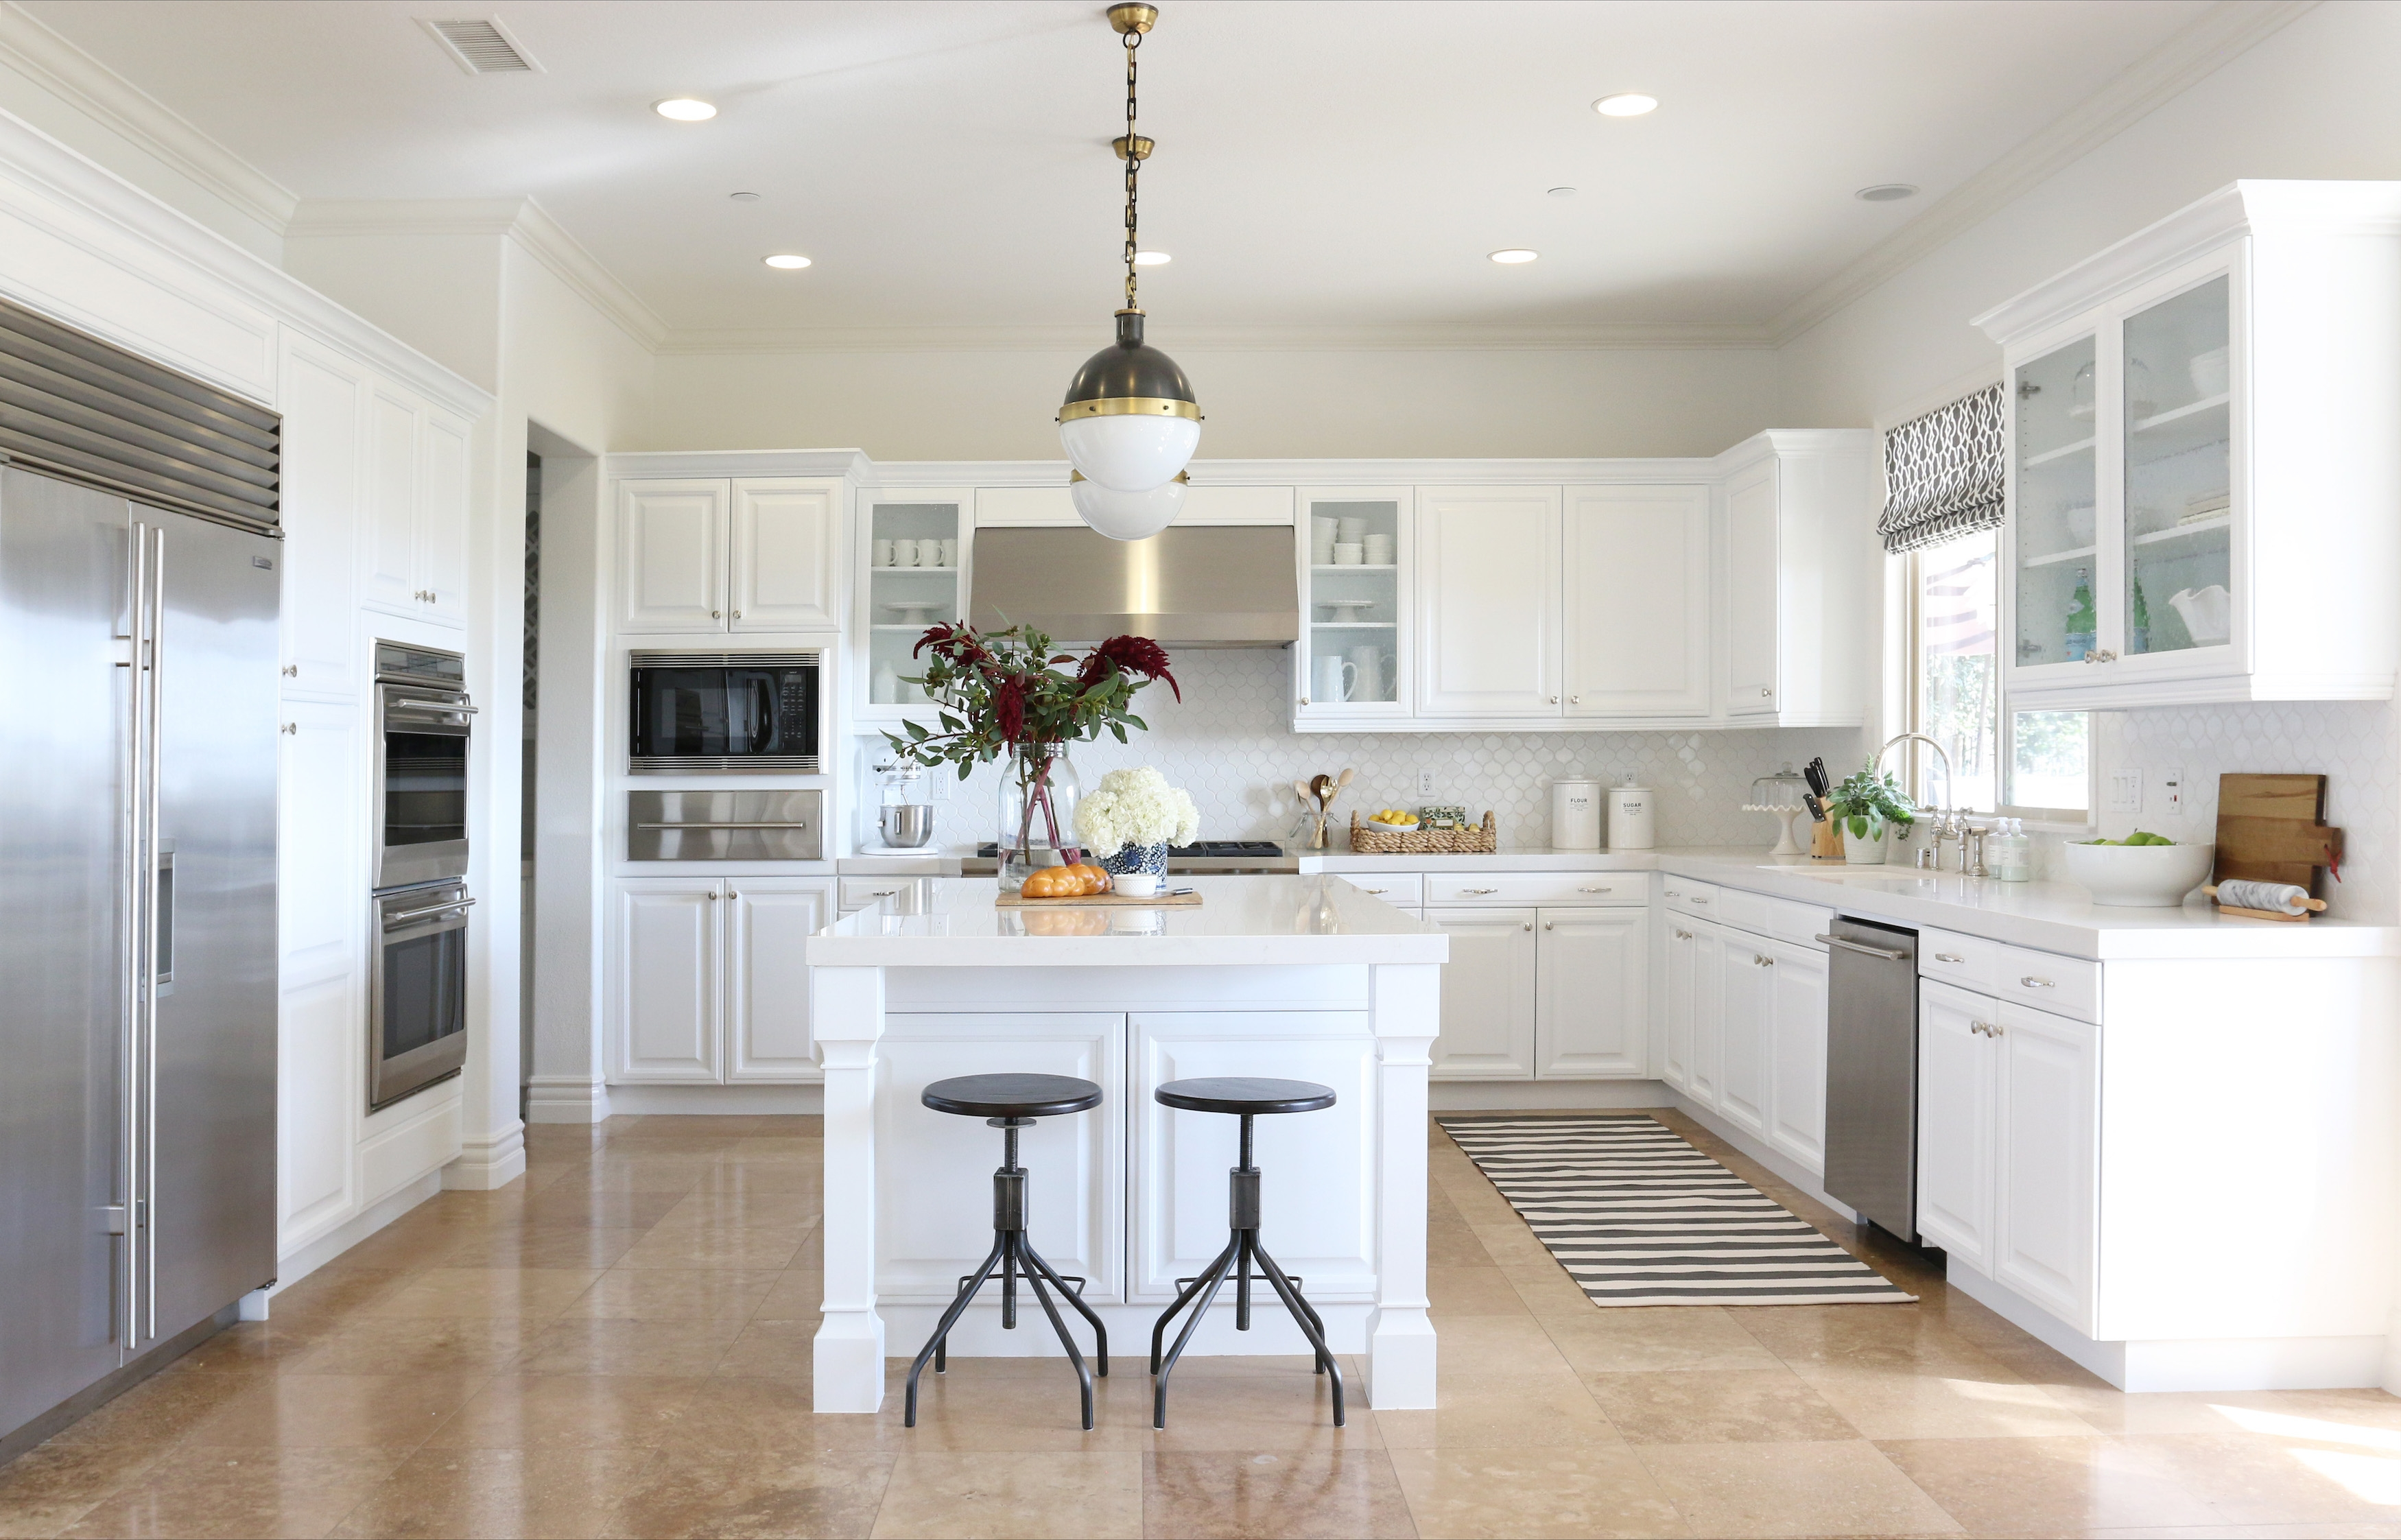 White Kitchen Cabinets Pictures Gallery11 best white kitchen cabinets design ideas for white cabinets